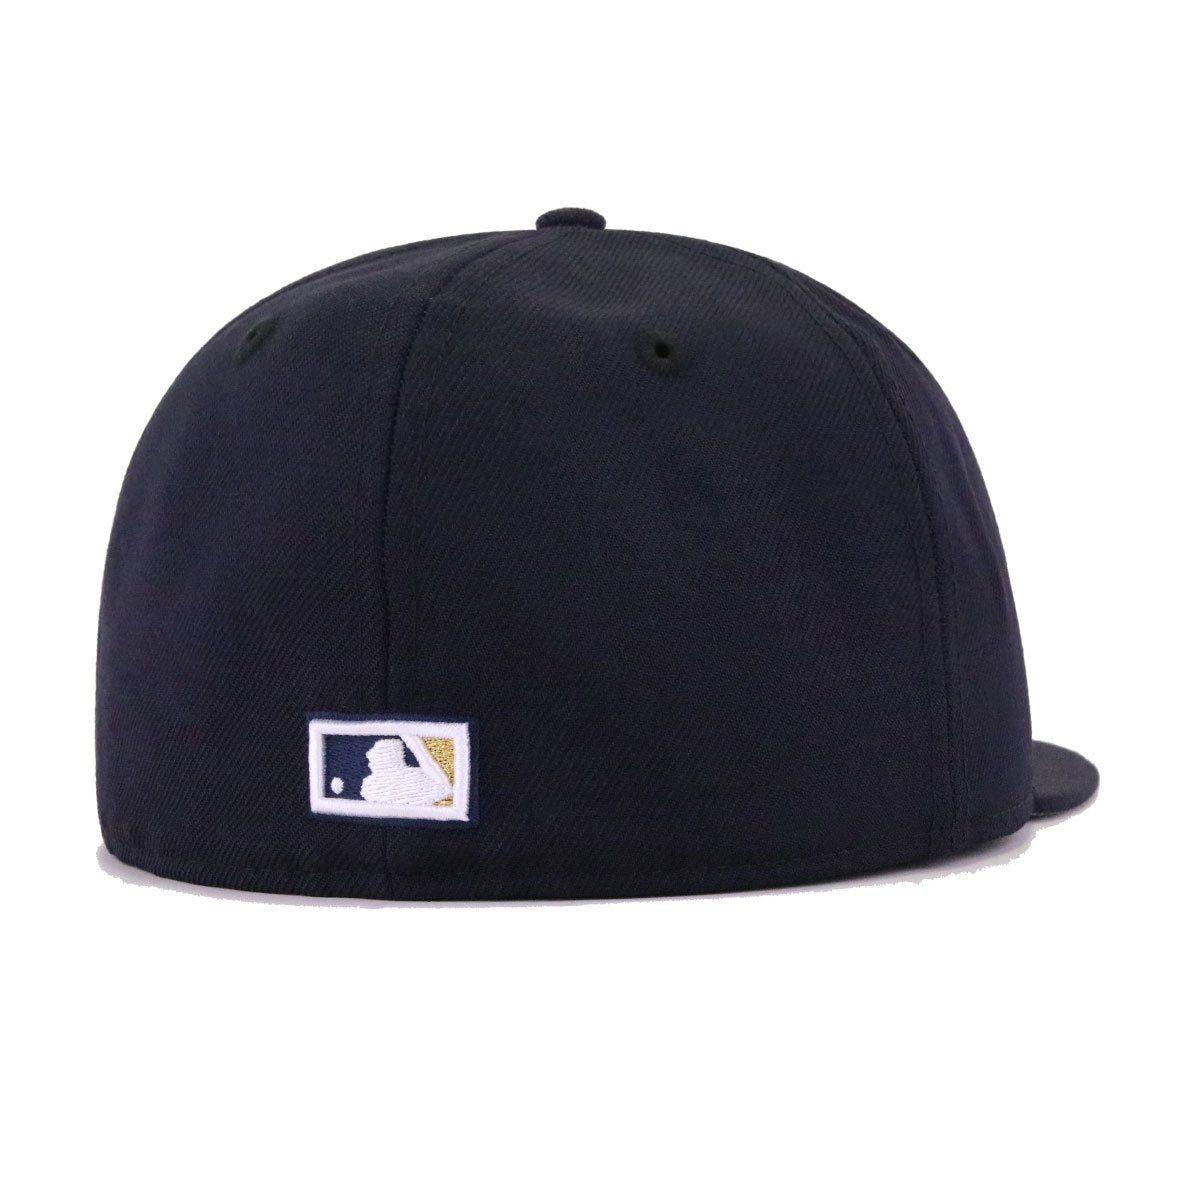 Houston Astros Navy Cooperstown New Era 59Fifty Fitted